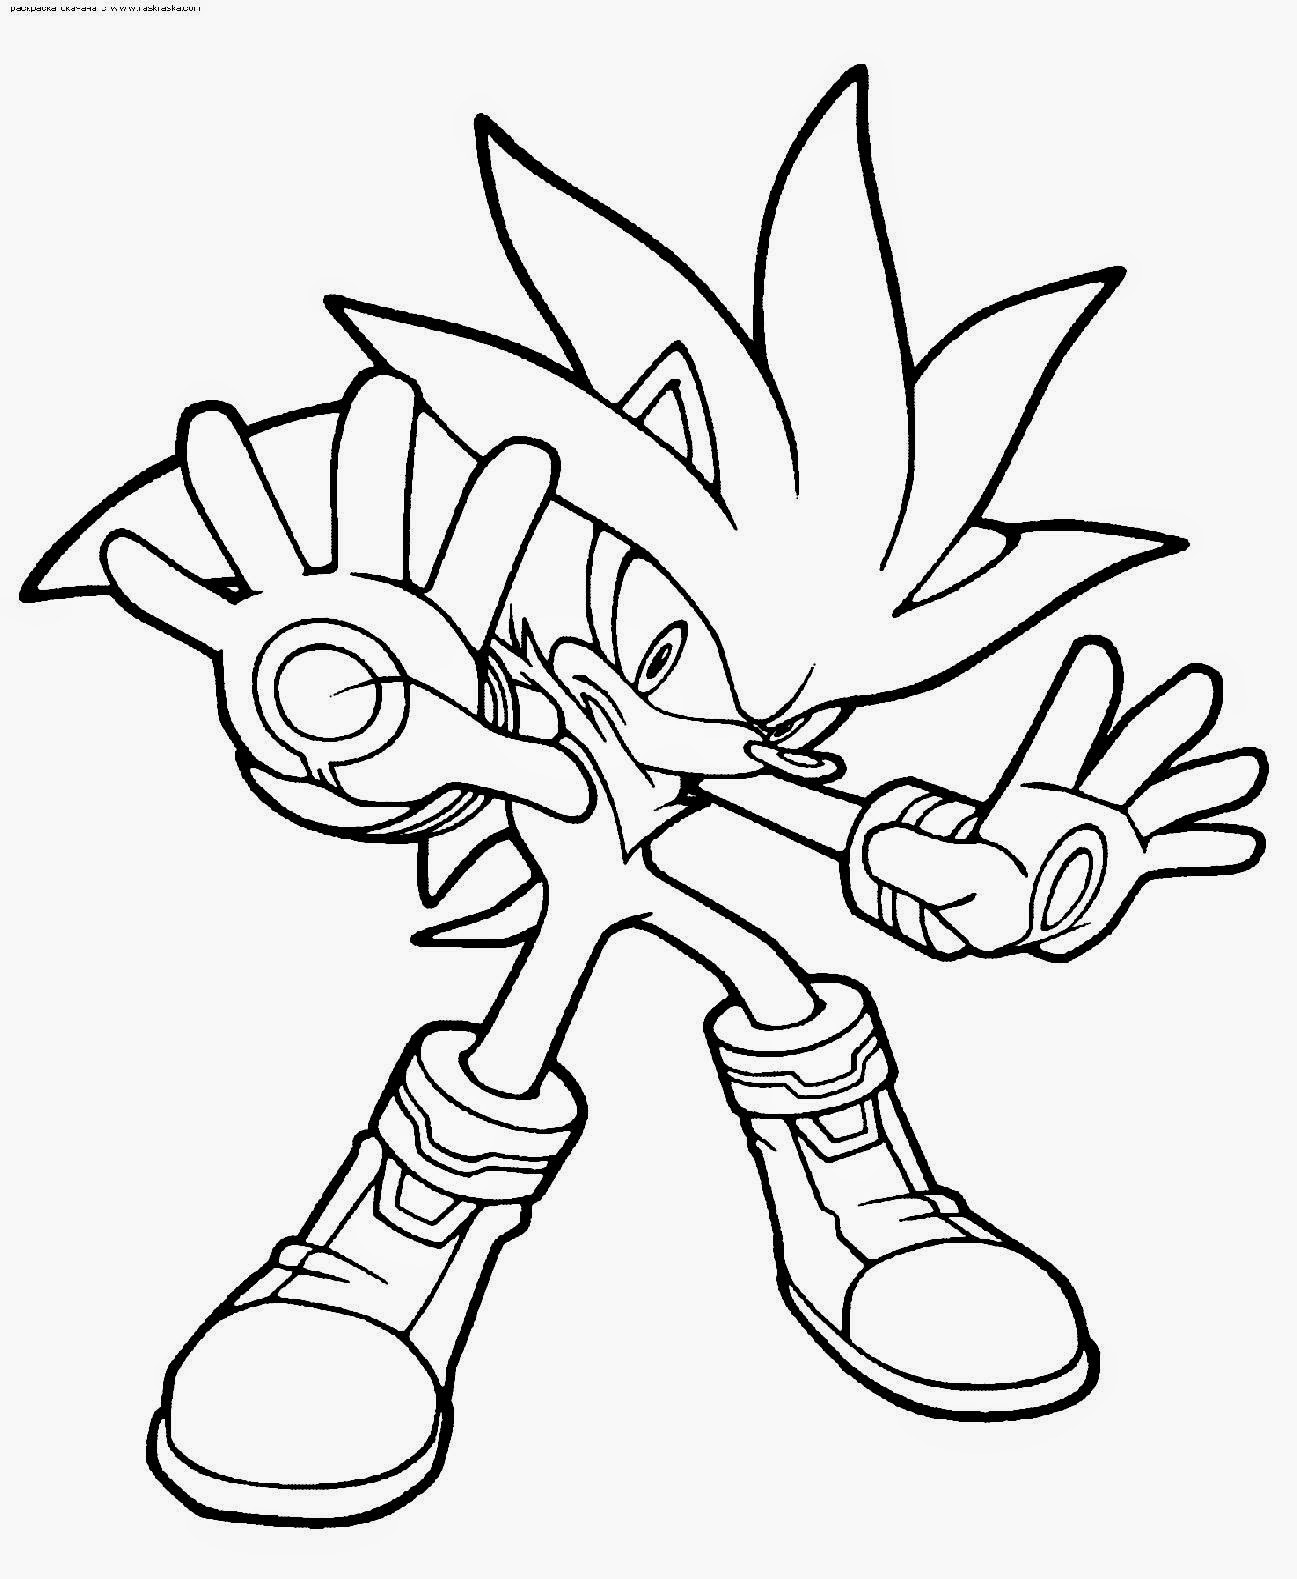 1297x1579 Fresh Sonic The Hedgehog And Friends Coloring Pages Sonic Coloring